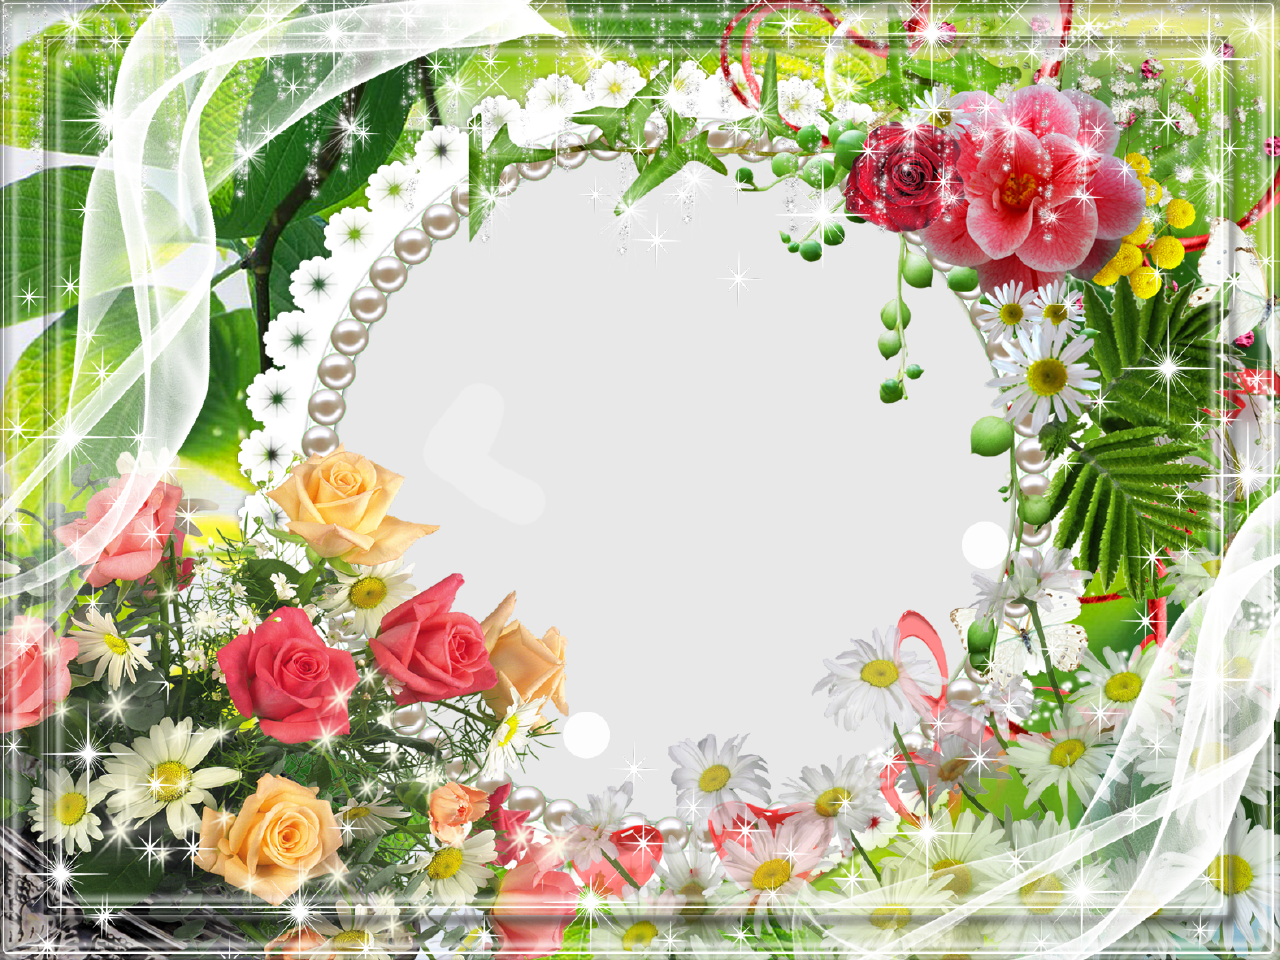 Circular pearl picture frame with color flowersg 1280960 circular pearl picture frame with color flowersg izmirmasajfo